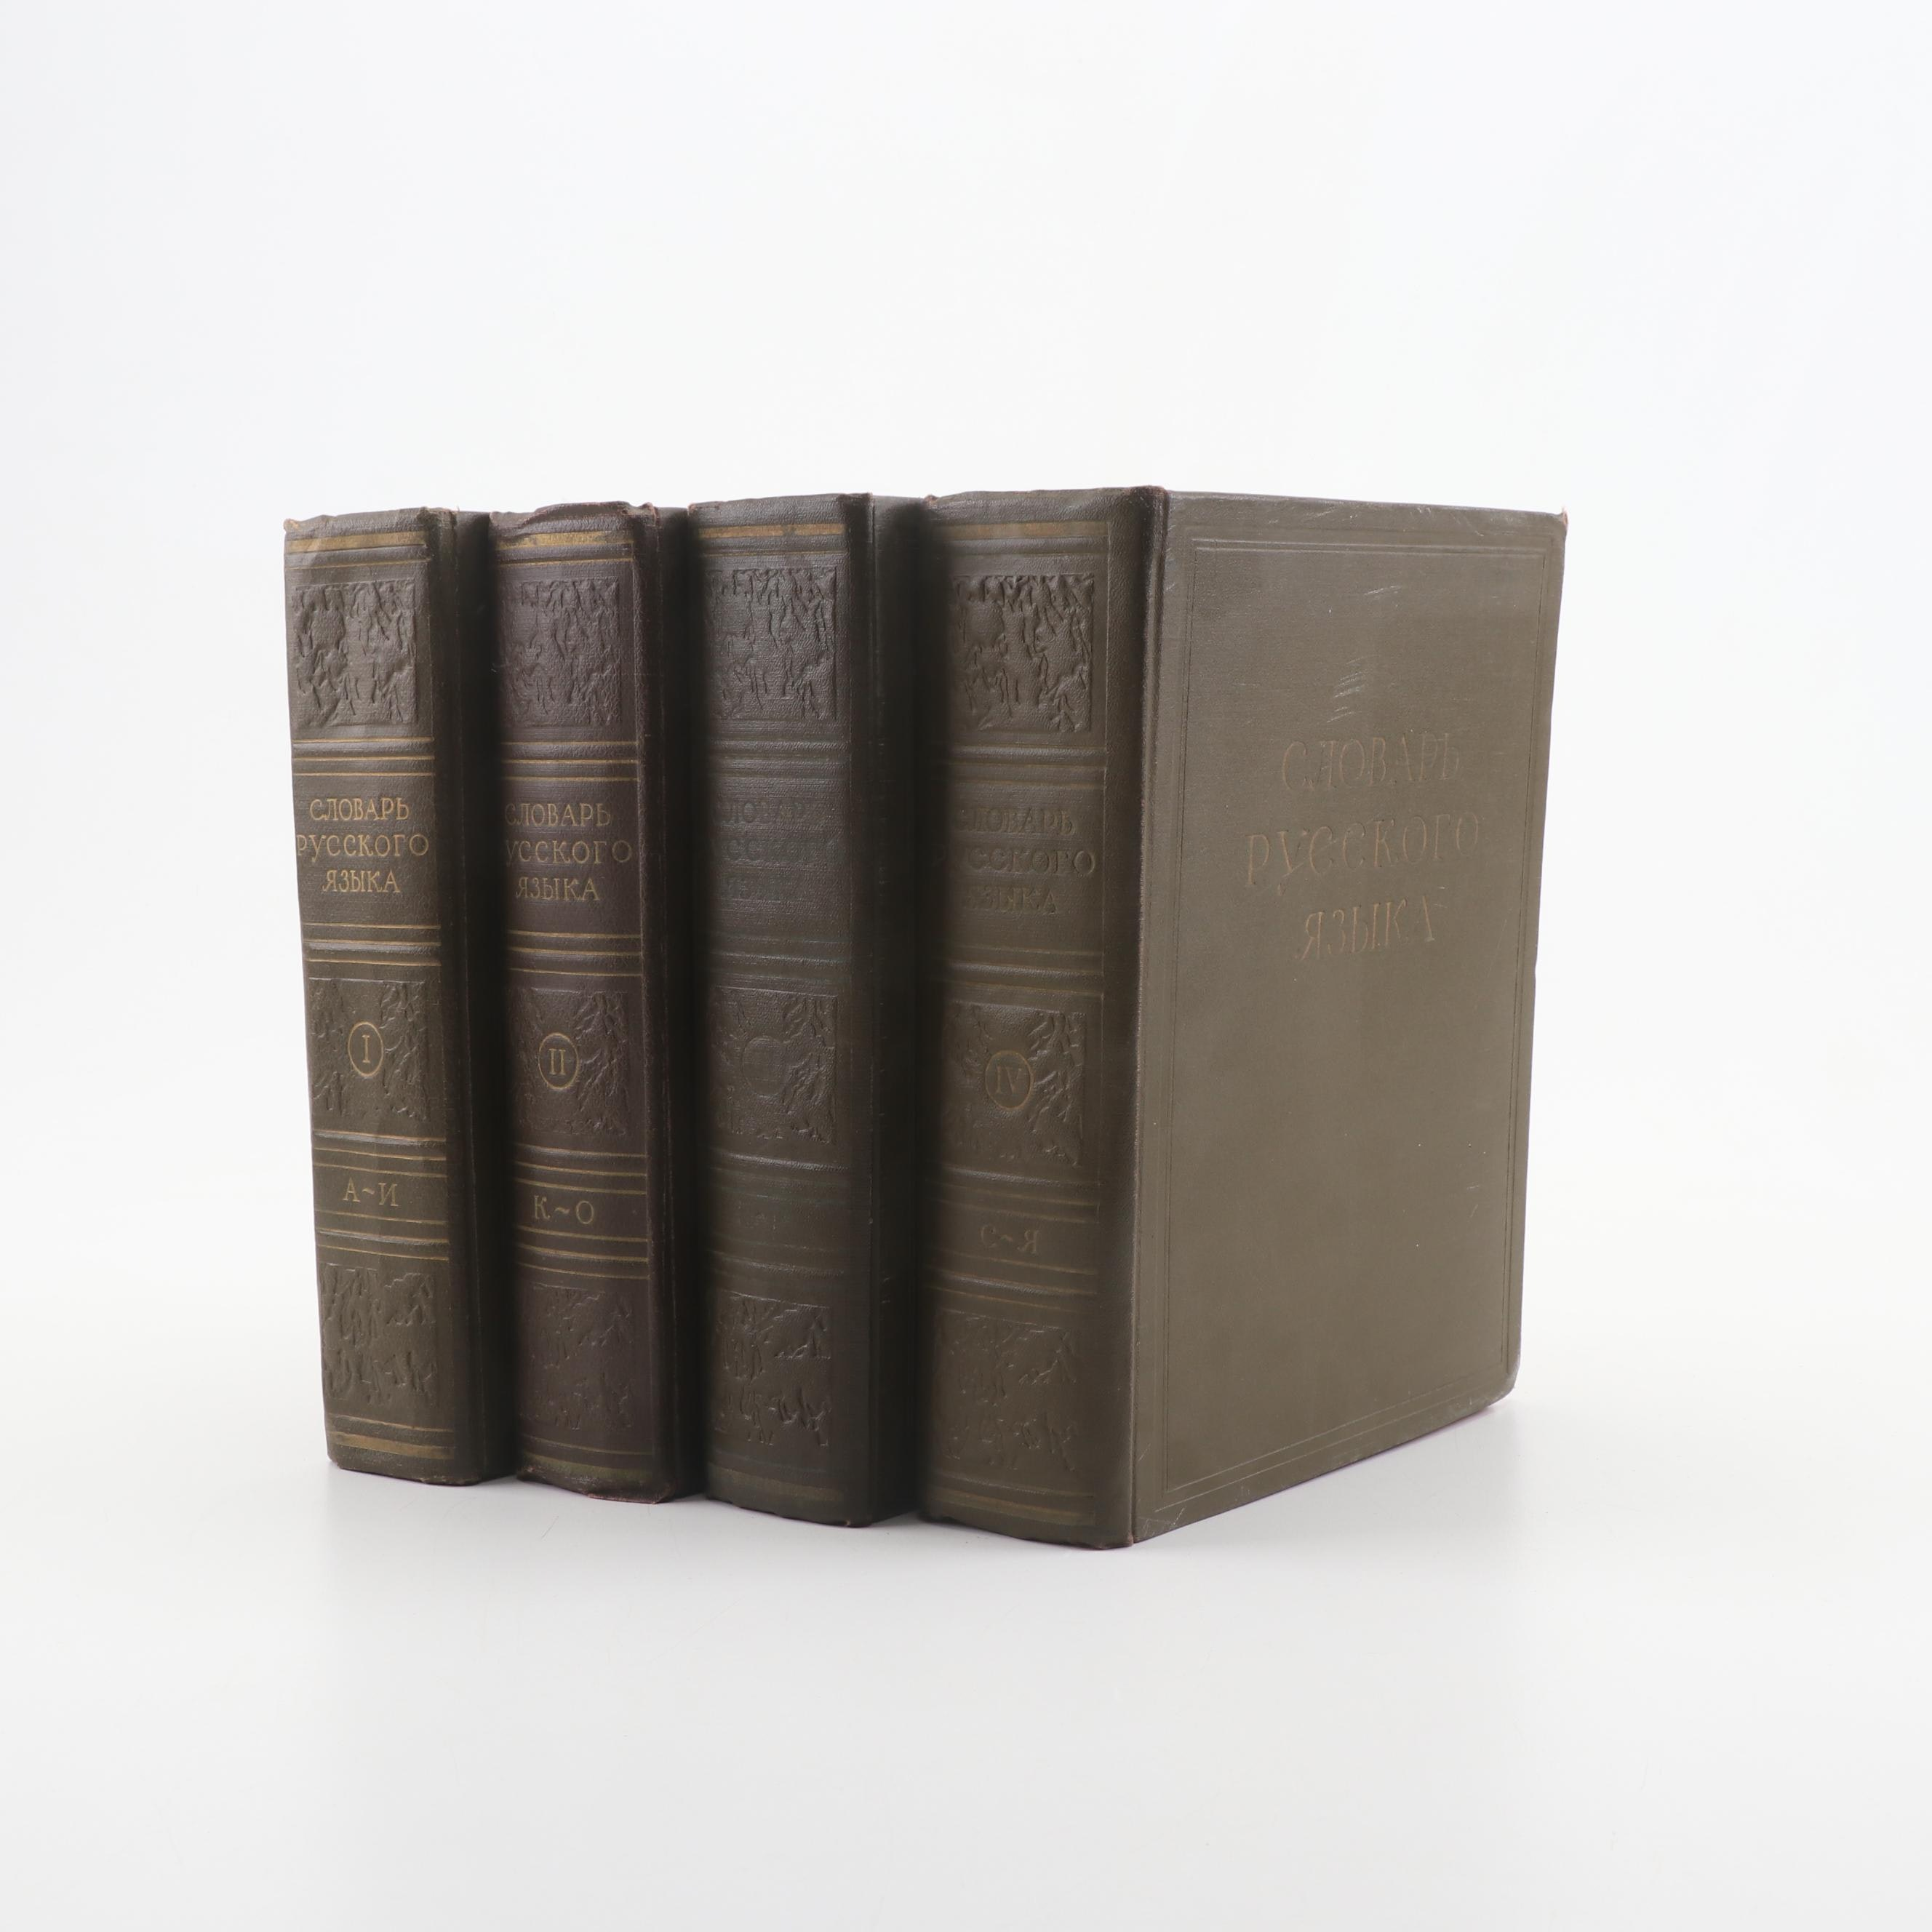 Russian Vocabulary Text Books in Four Volumes